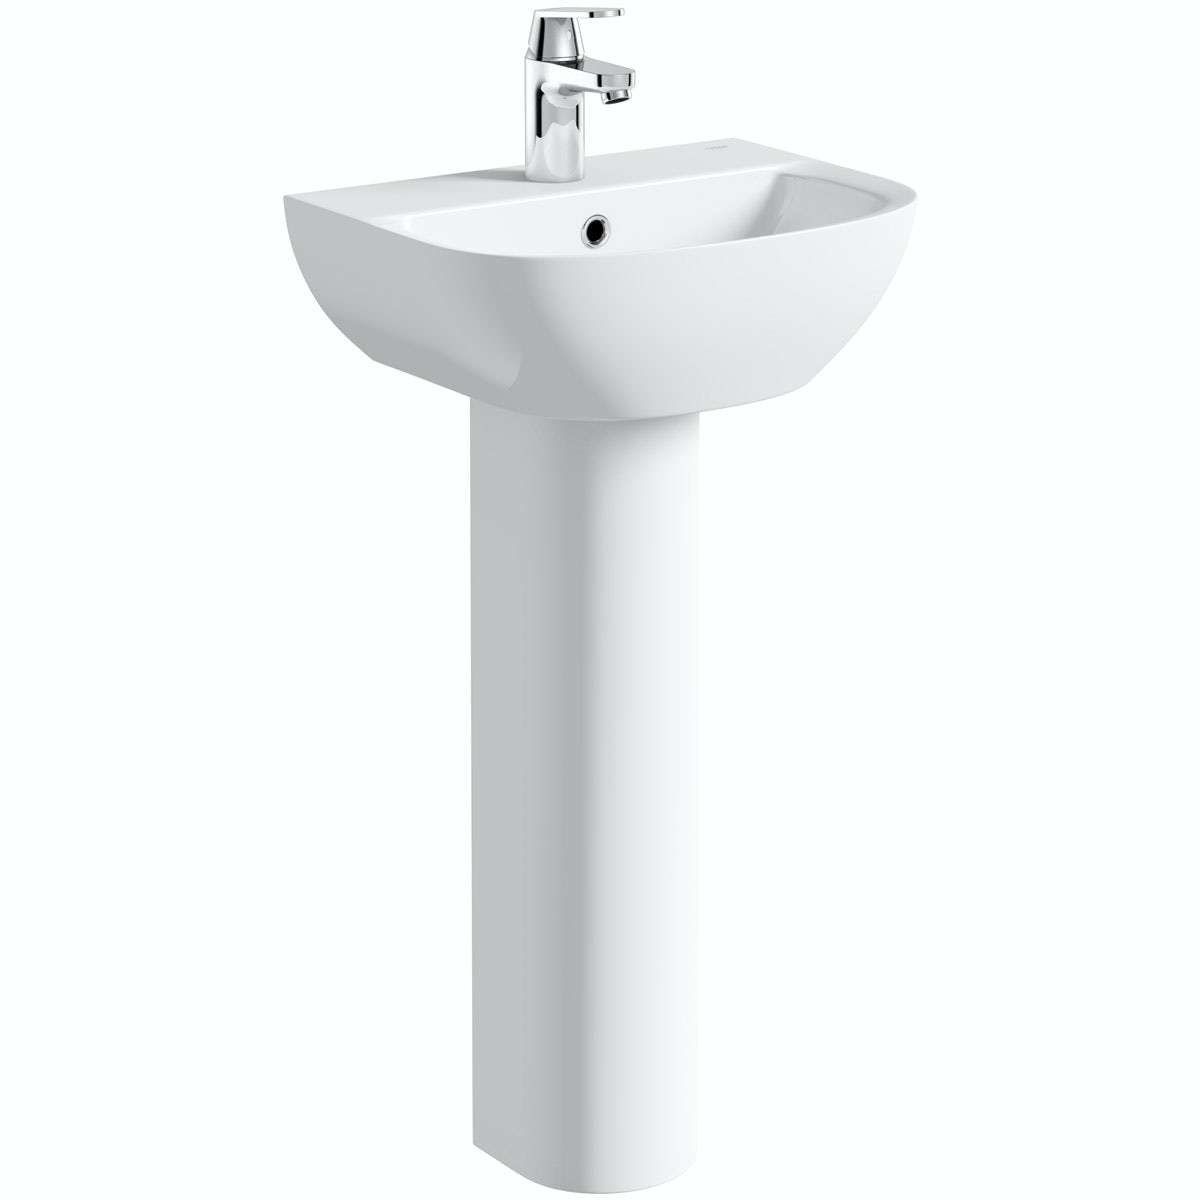 Grohe Bau 1 tap hole full pedestal basin 450mm